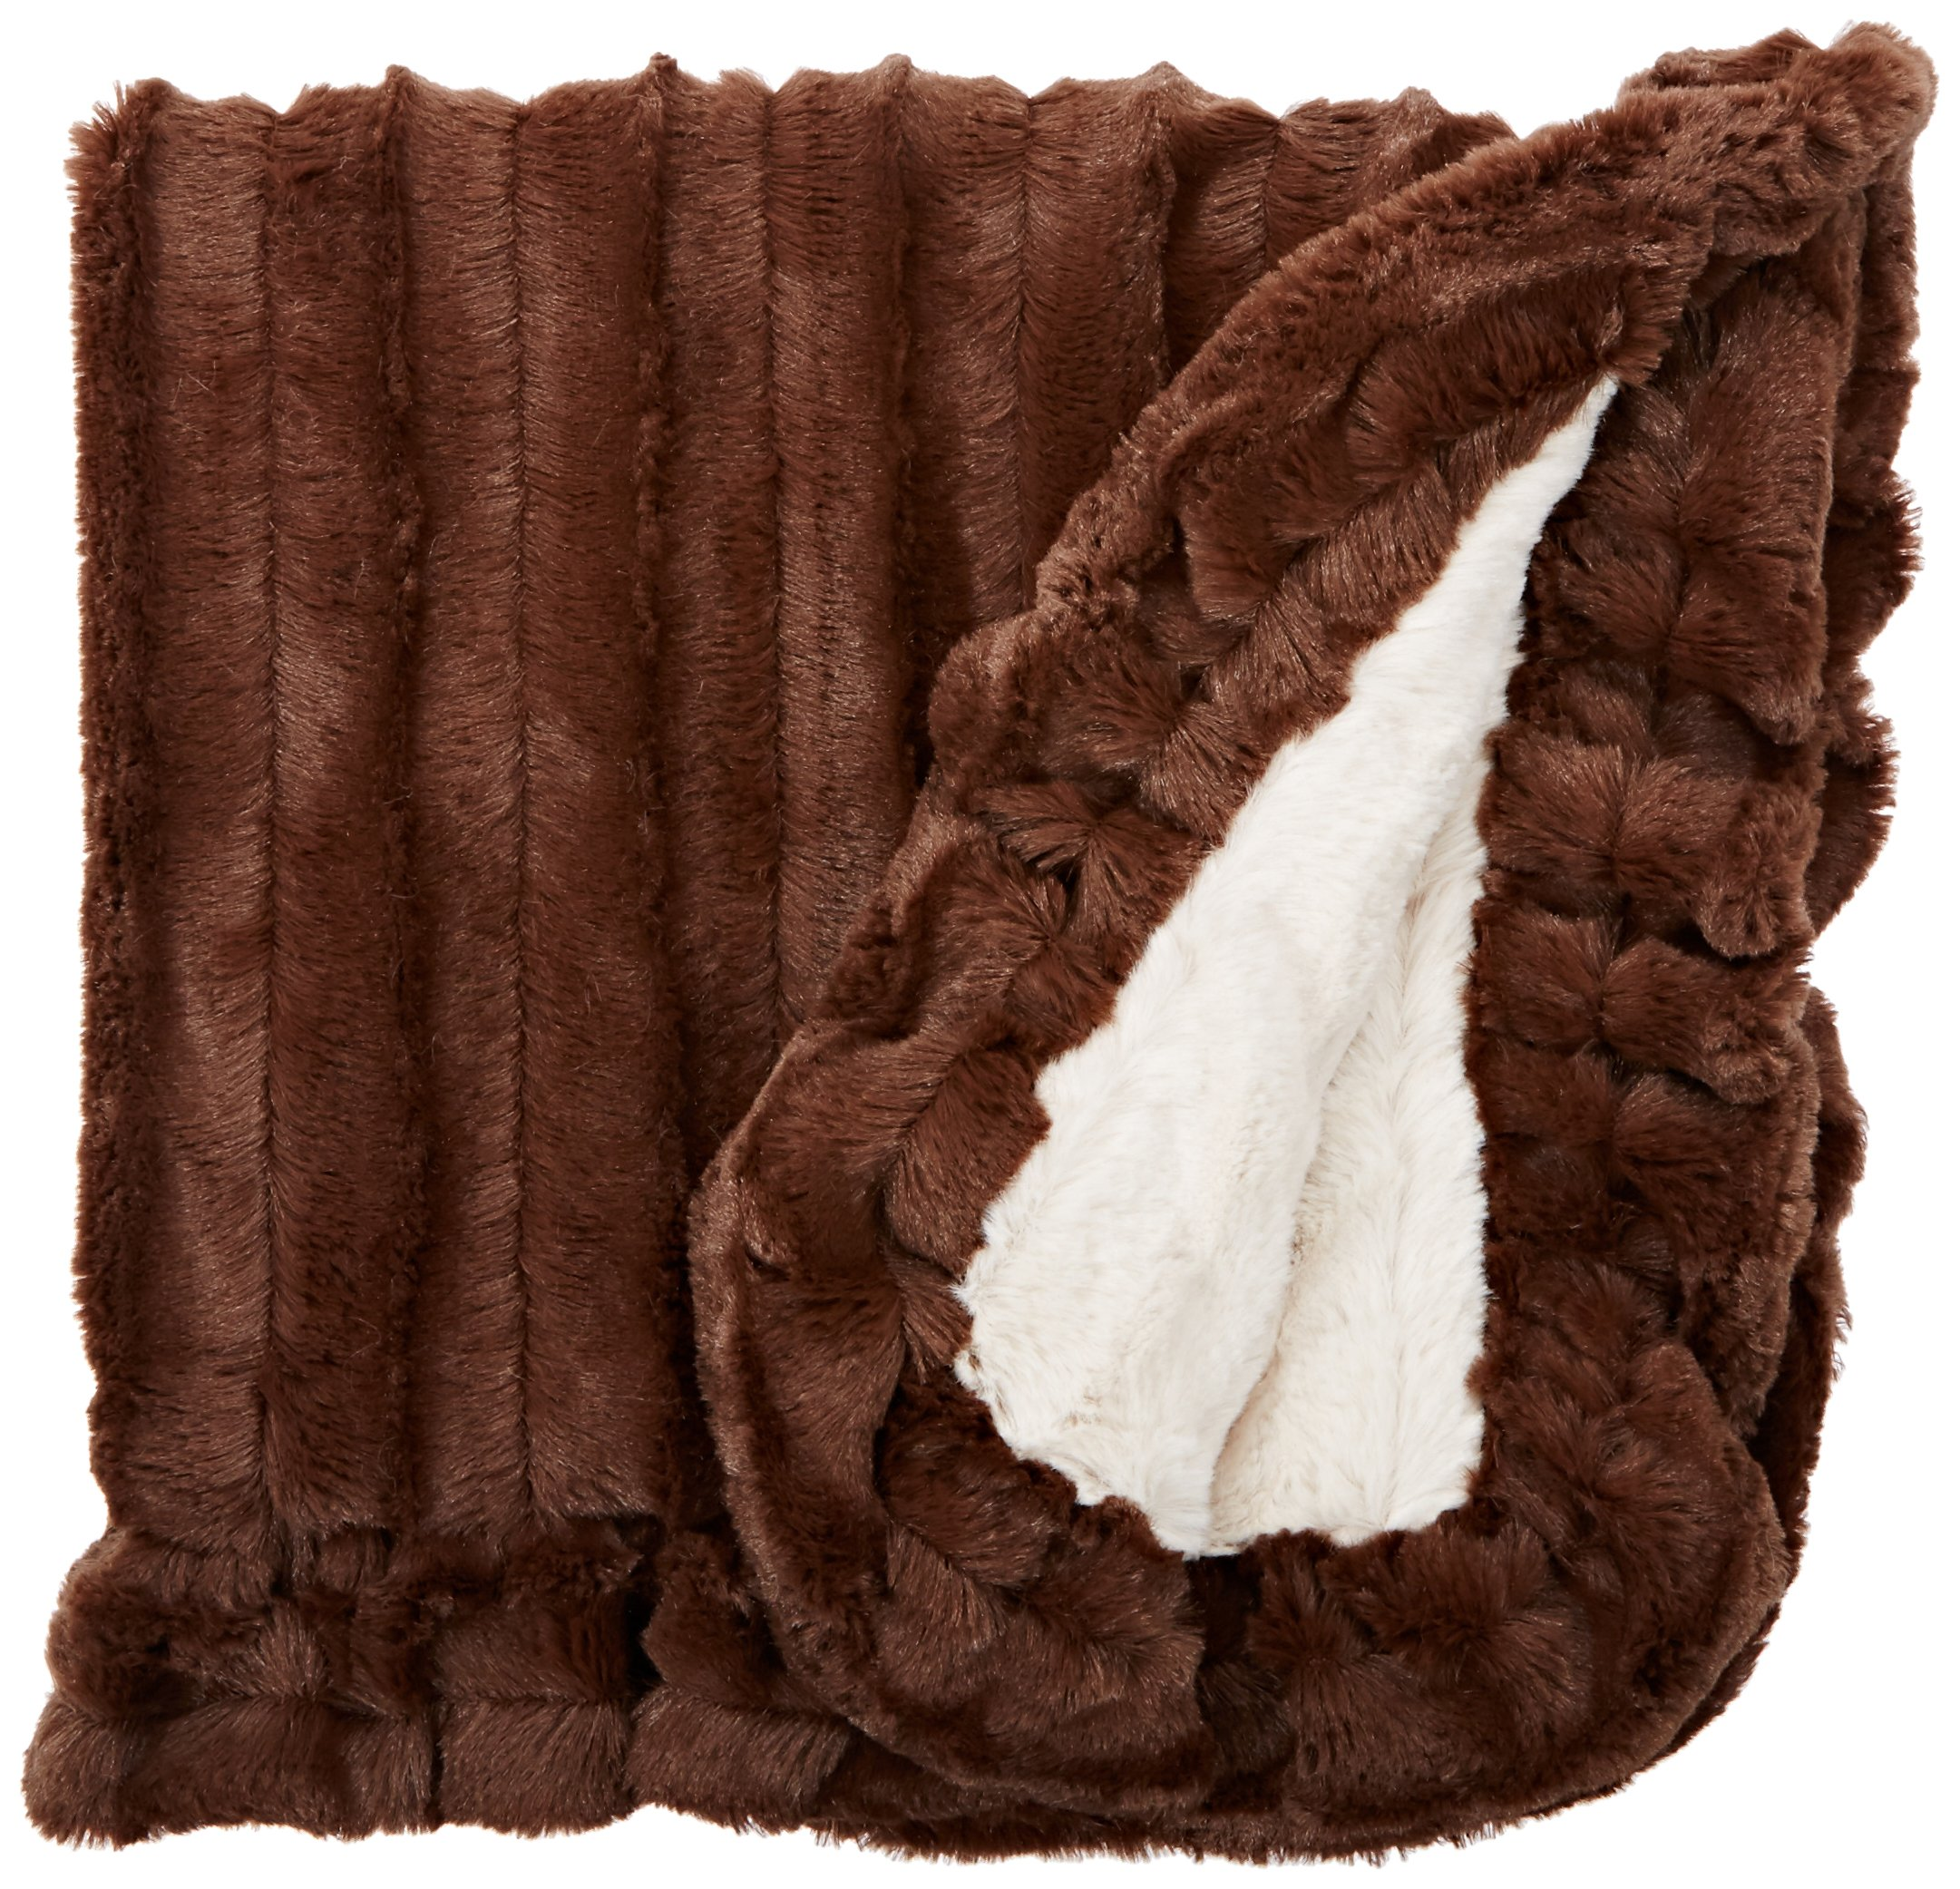 BESSIE AND BARNIE Natural Beauty/Godiva Brown Luxury Ultra Plush Faux Fur Pet, Dog, Cat, Puppy Super Soft Reversible Blanket (Multiple Sizes)